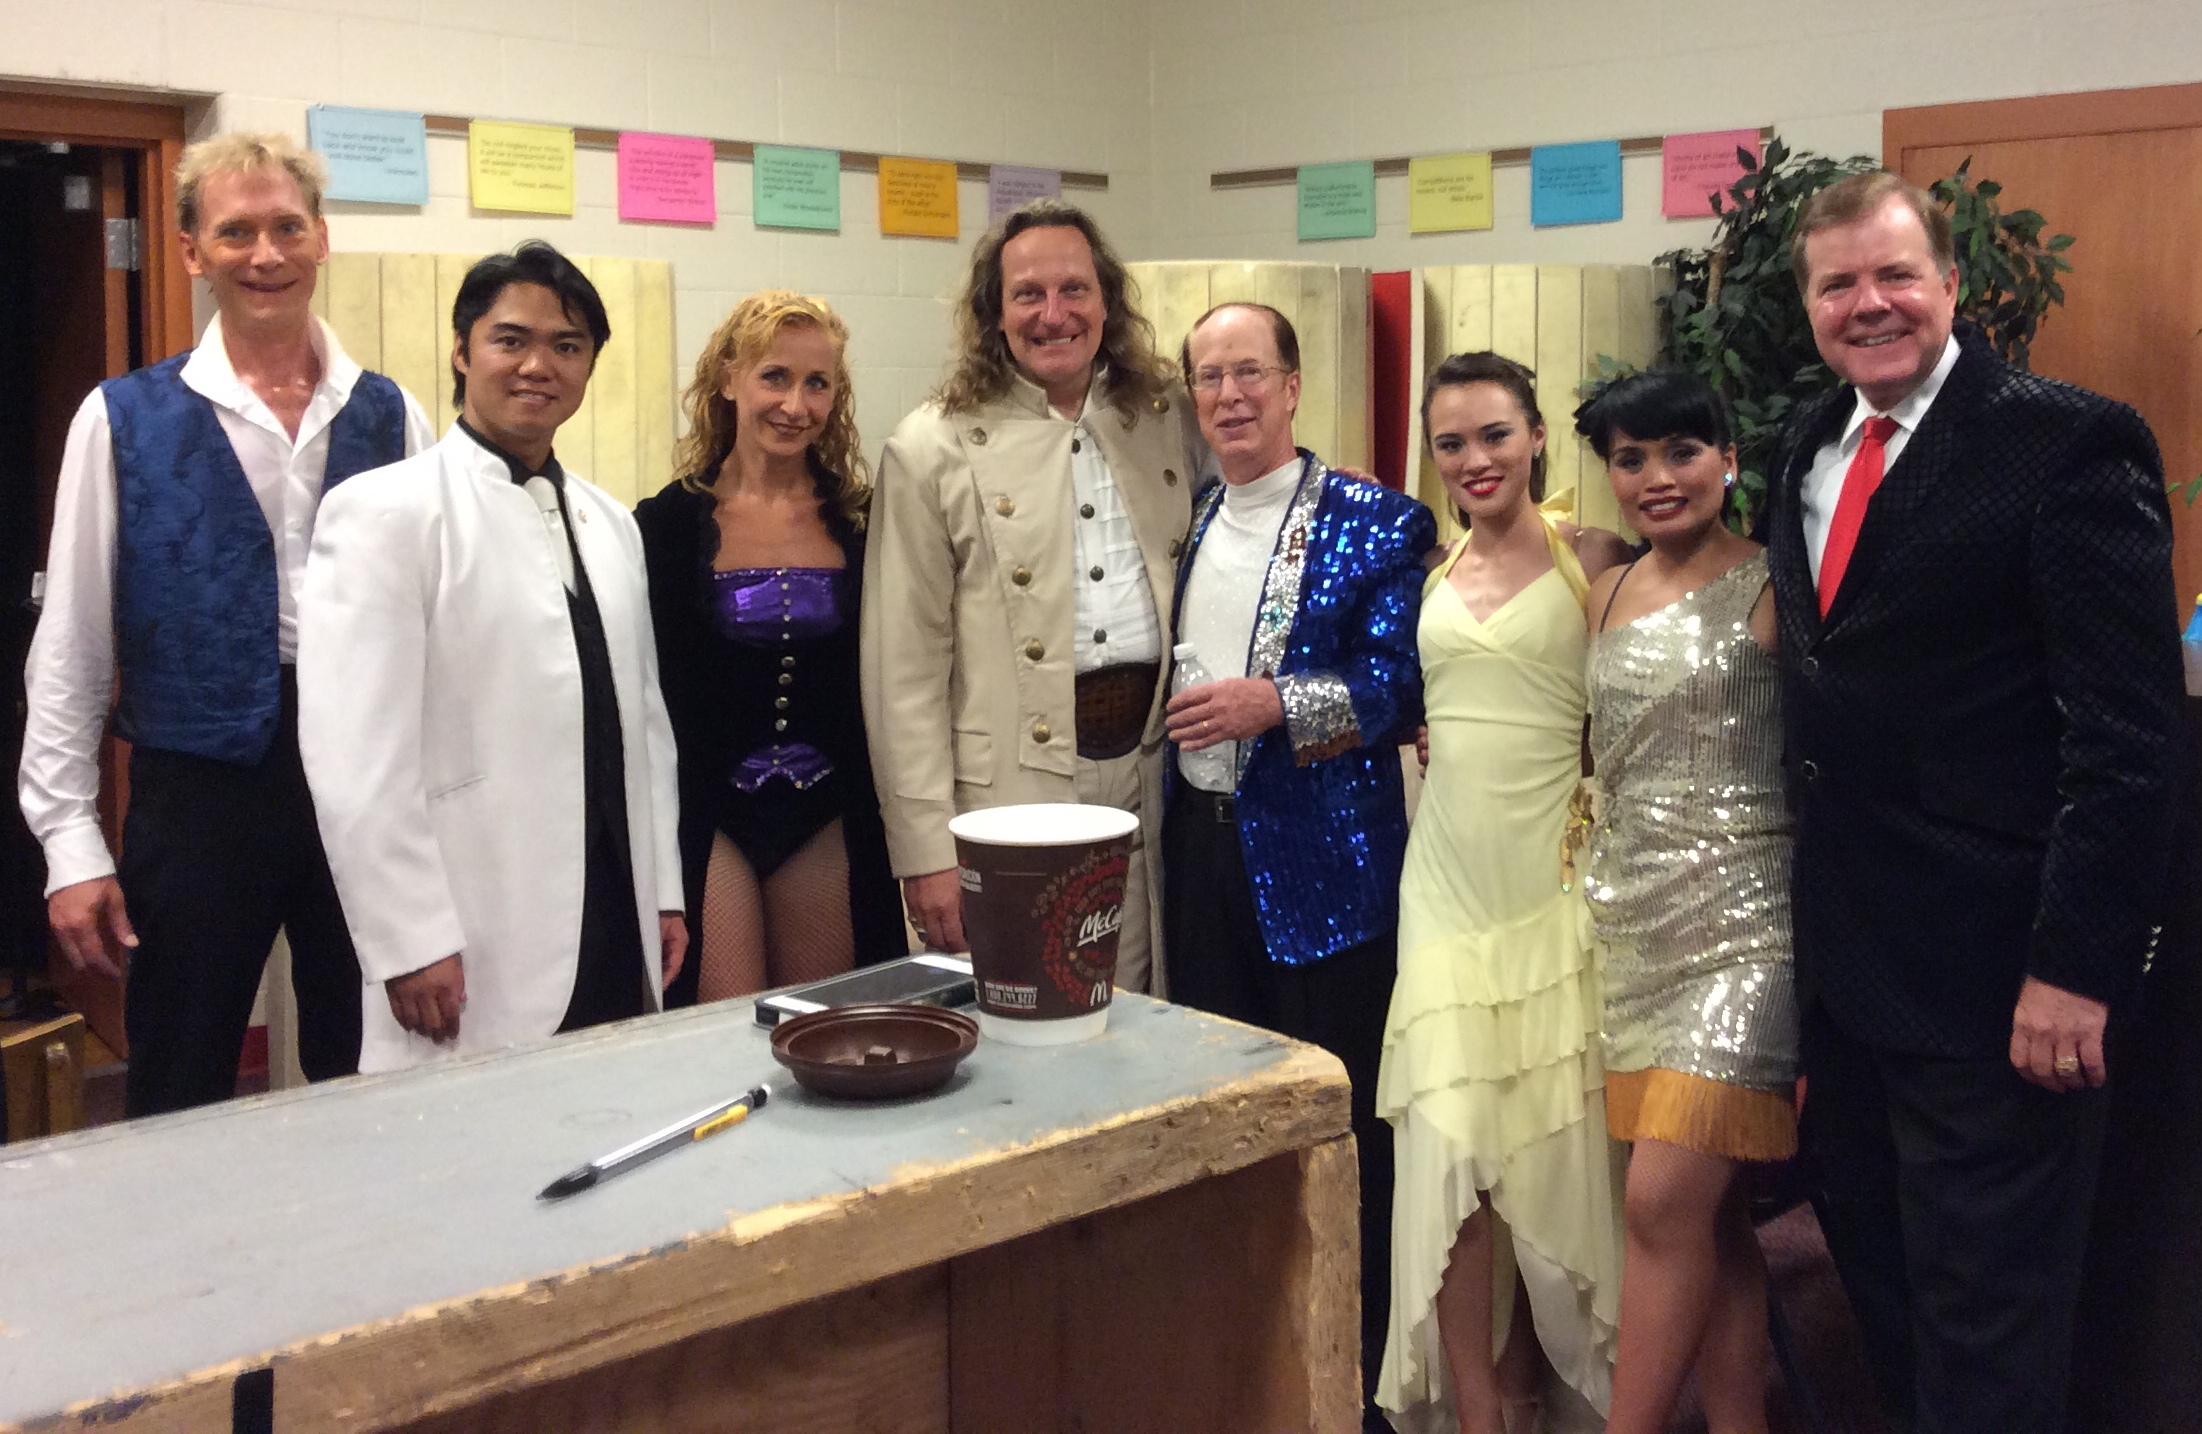 Friday Night cast backstage